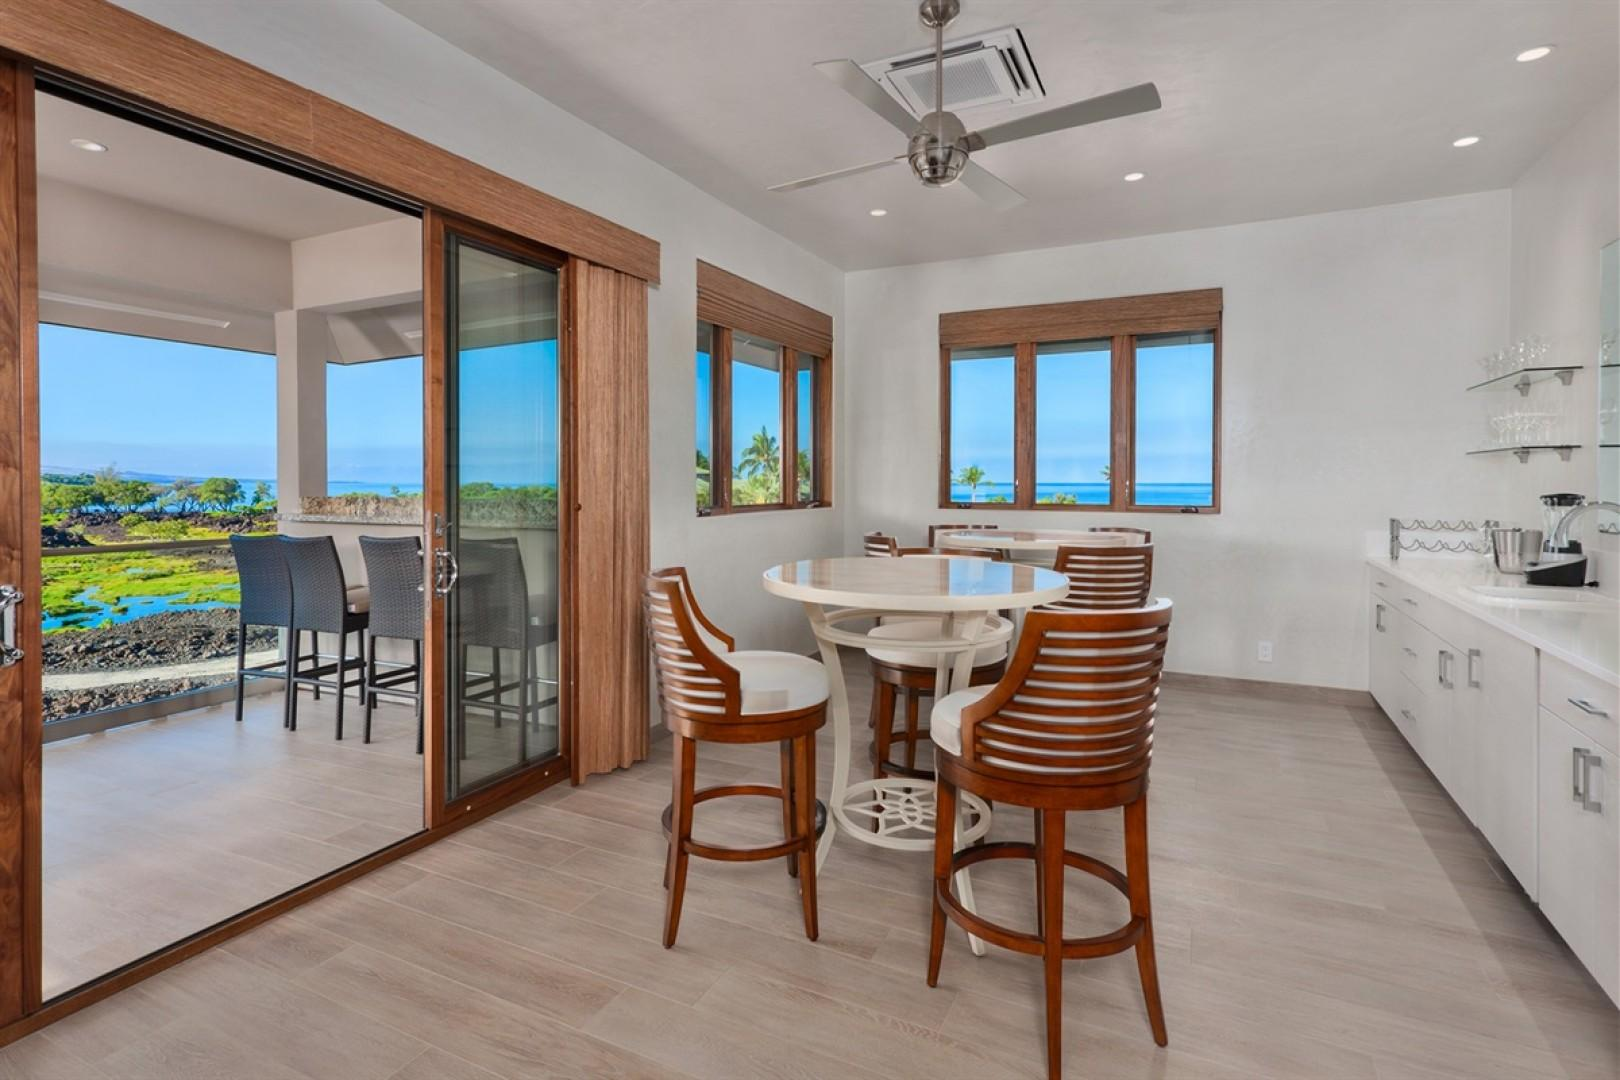 Second floor lounge with wet bar and epic views.